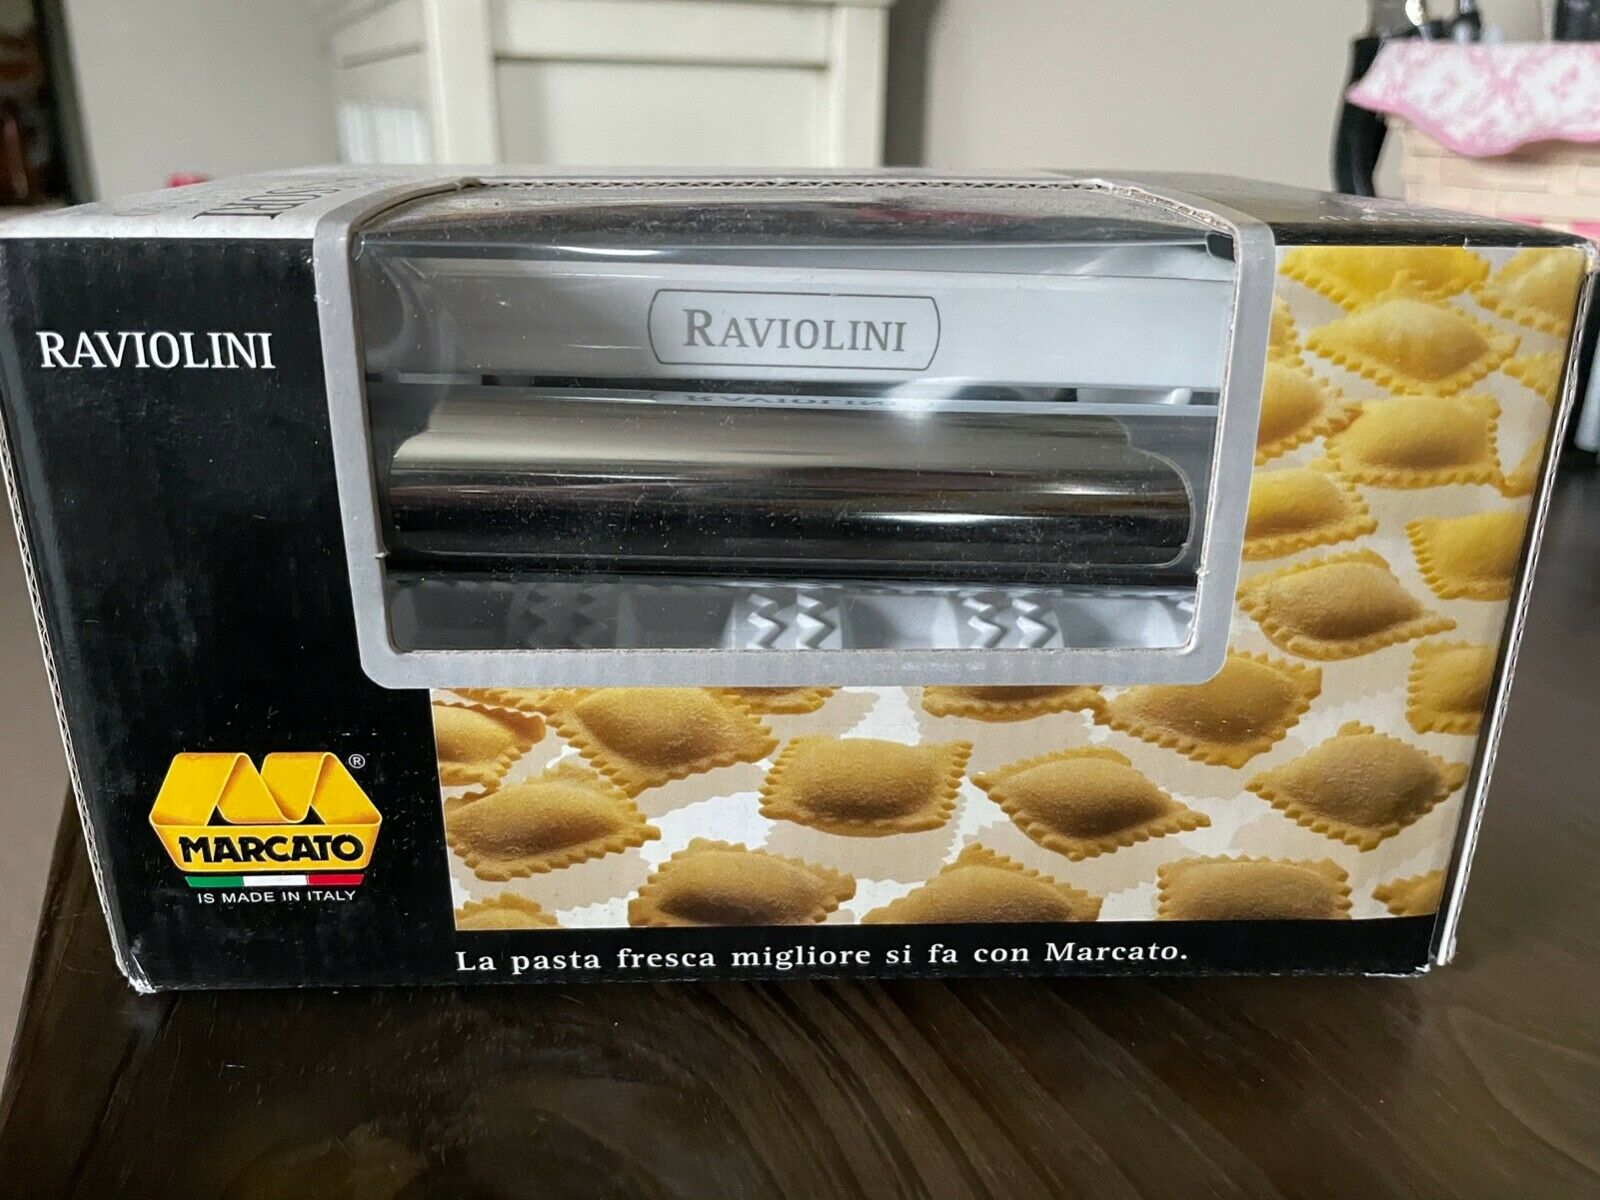 Marcato Raviolini Mini Ravioli Maker Attachment ONLY for Atl